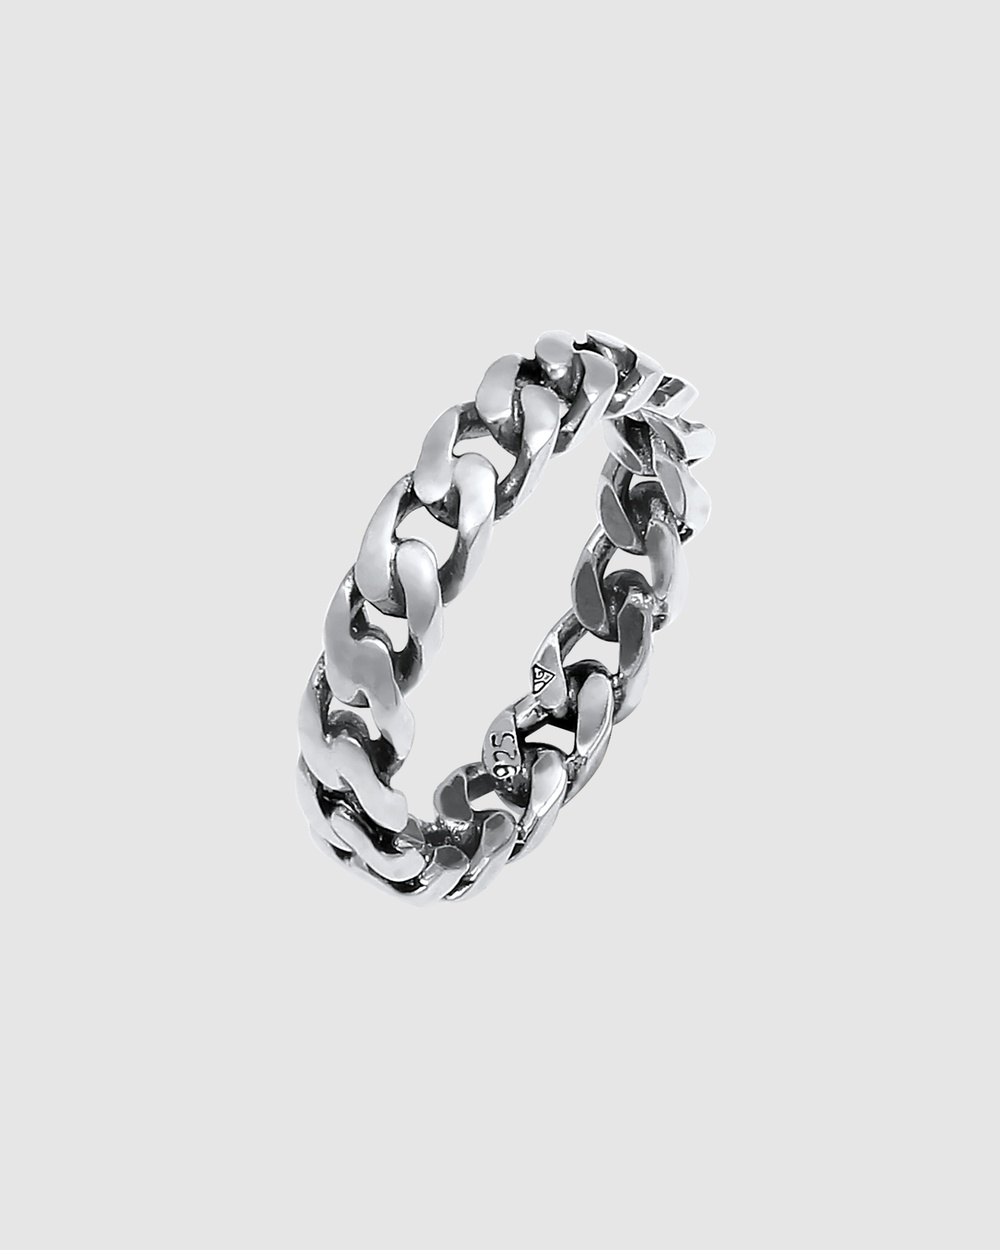 Elli Jewelry Ring Bandring Knot Infinite Twisted Oxidised in 925 Sterling Silver Jewellery Silver